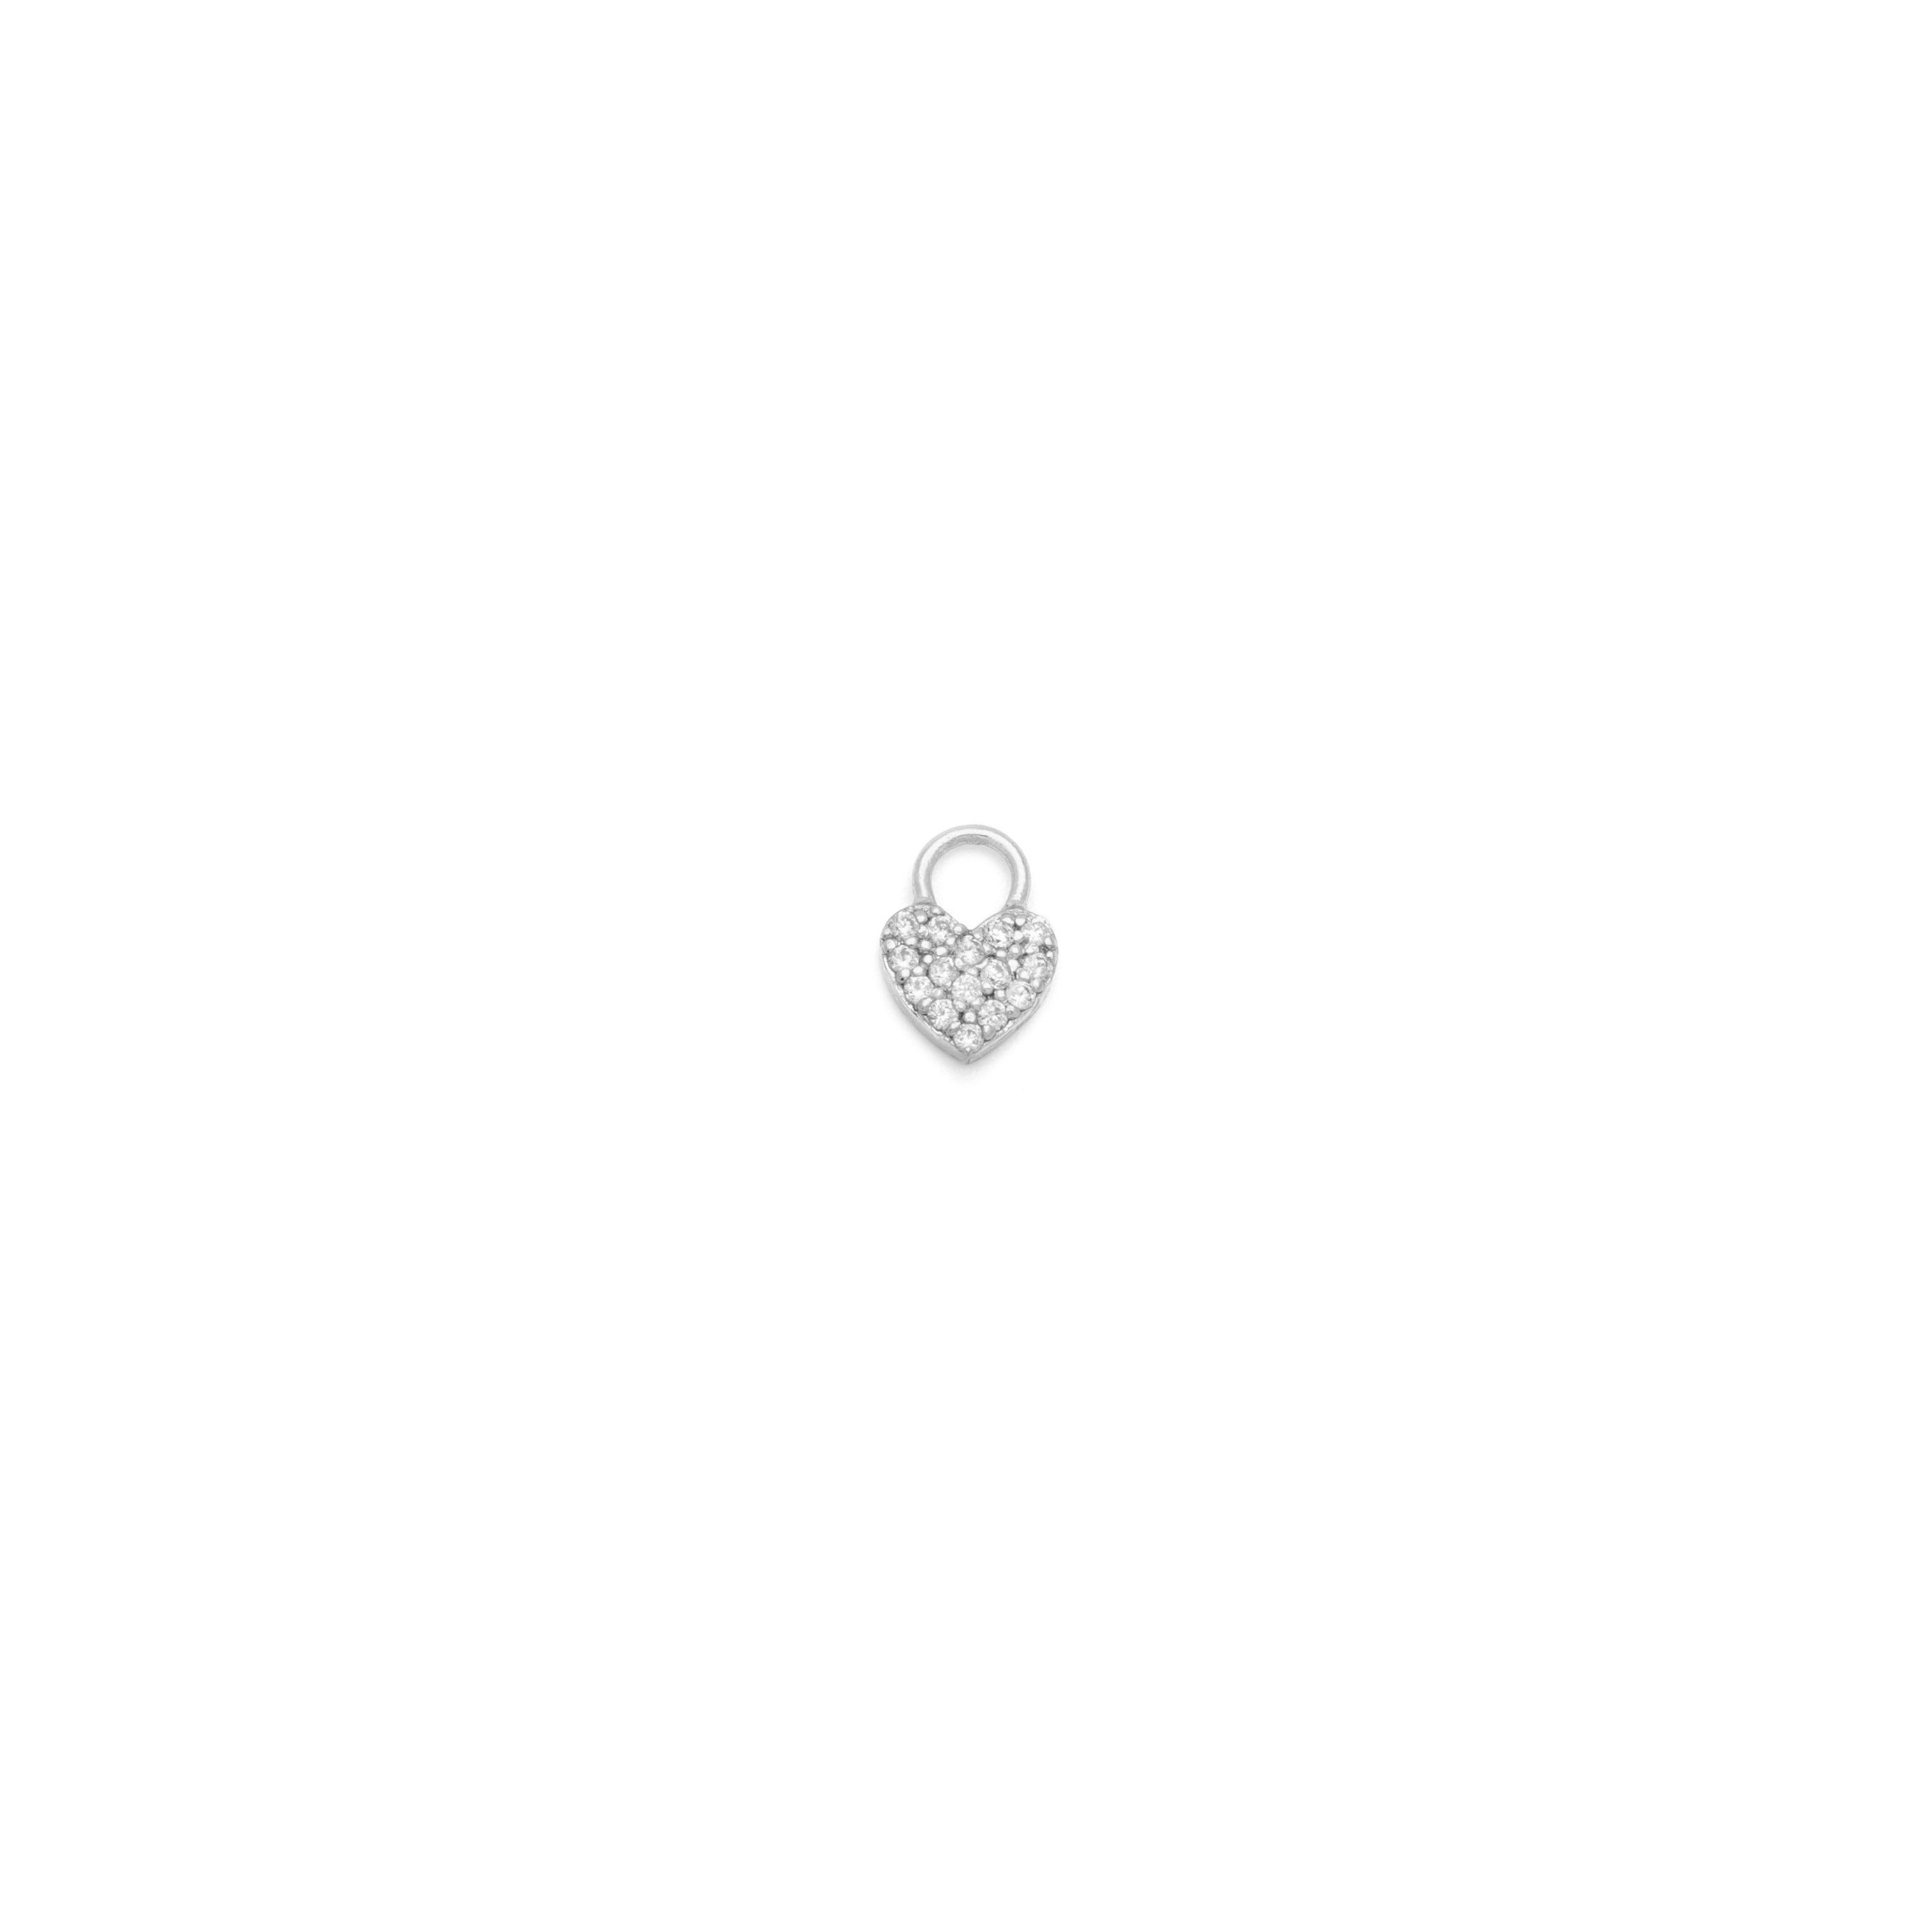 Single Pave Heart Earring Charm - Sterling Silver